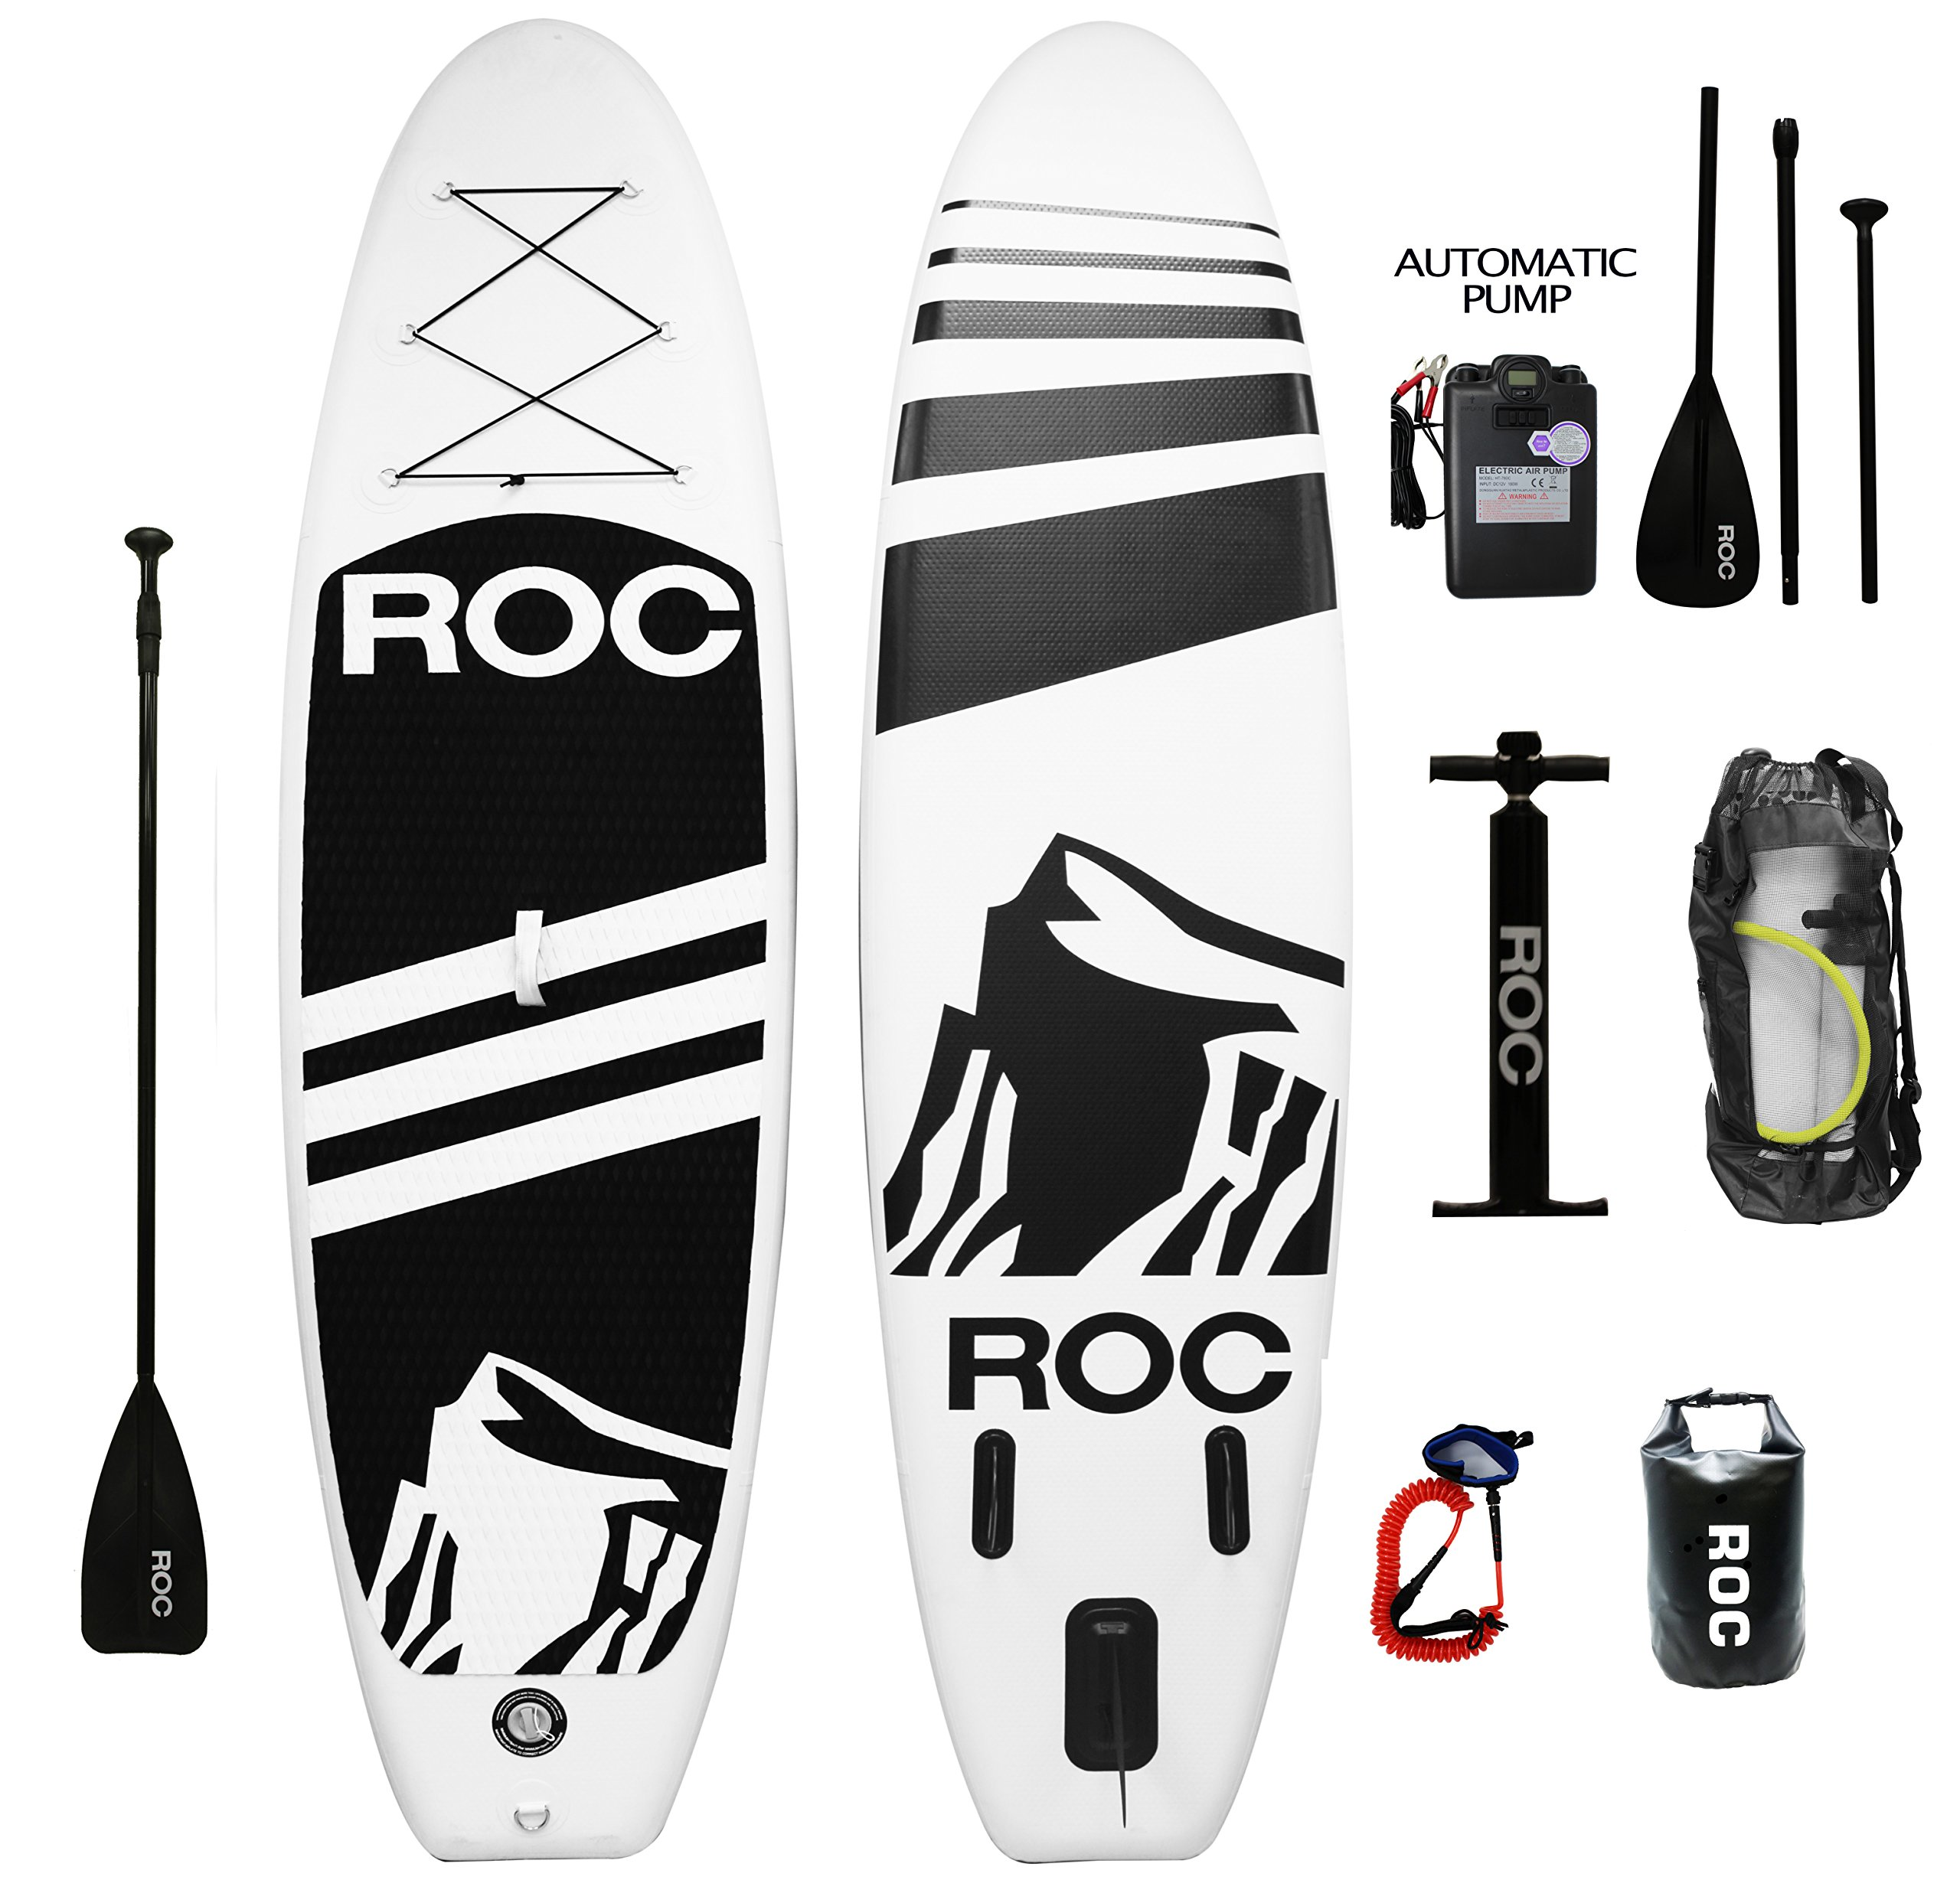 Inflatable Stand Up Paddle Board by Roc Paddleboards W FREE AUTOMATIC ELECTRIC PUMP , Waterproof Bag , leash , Paddle and hand pump !!! 10' long 6'' Thick. SUP, Paddle boards.